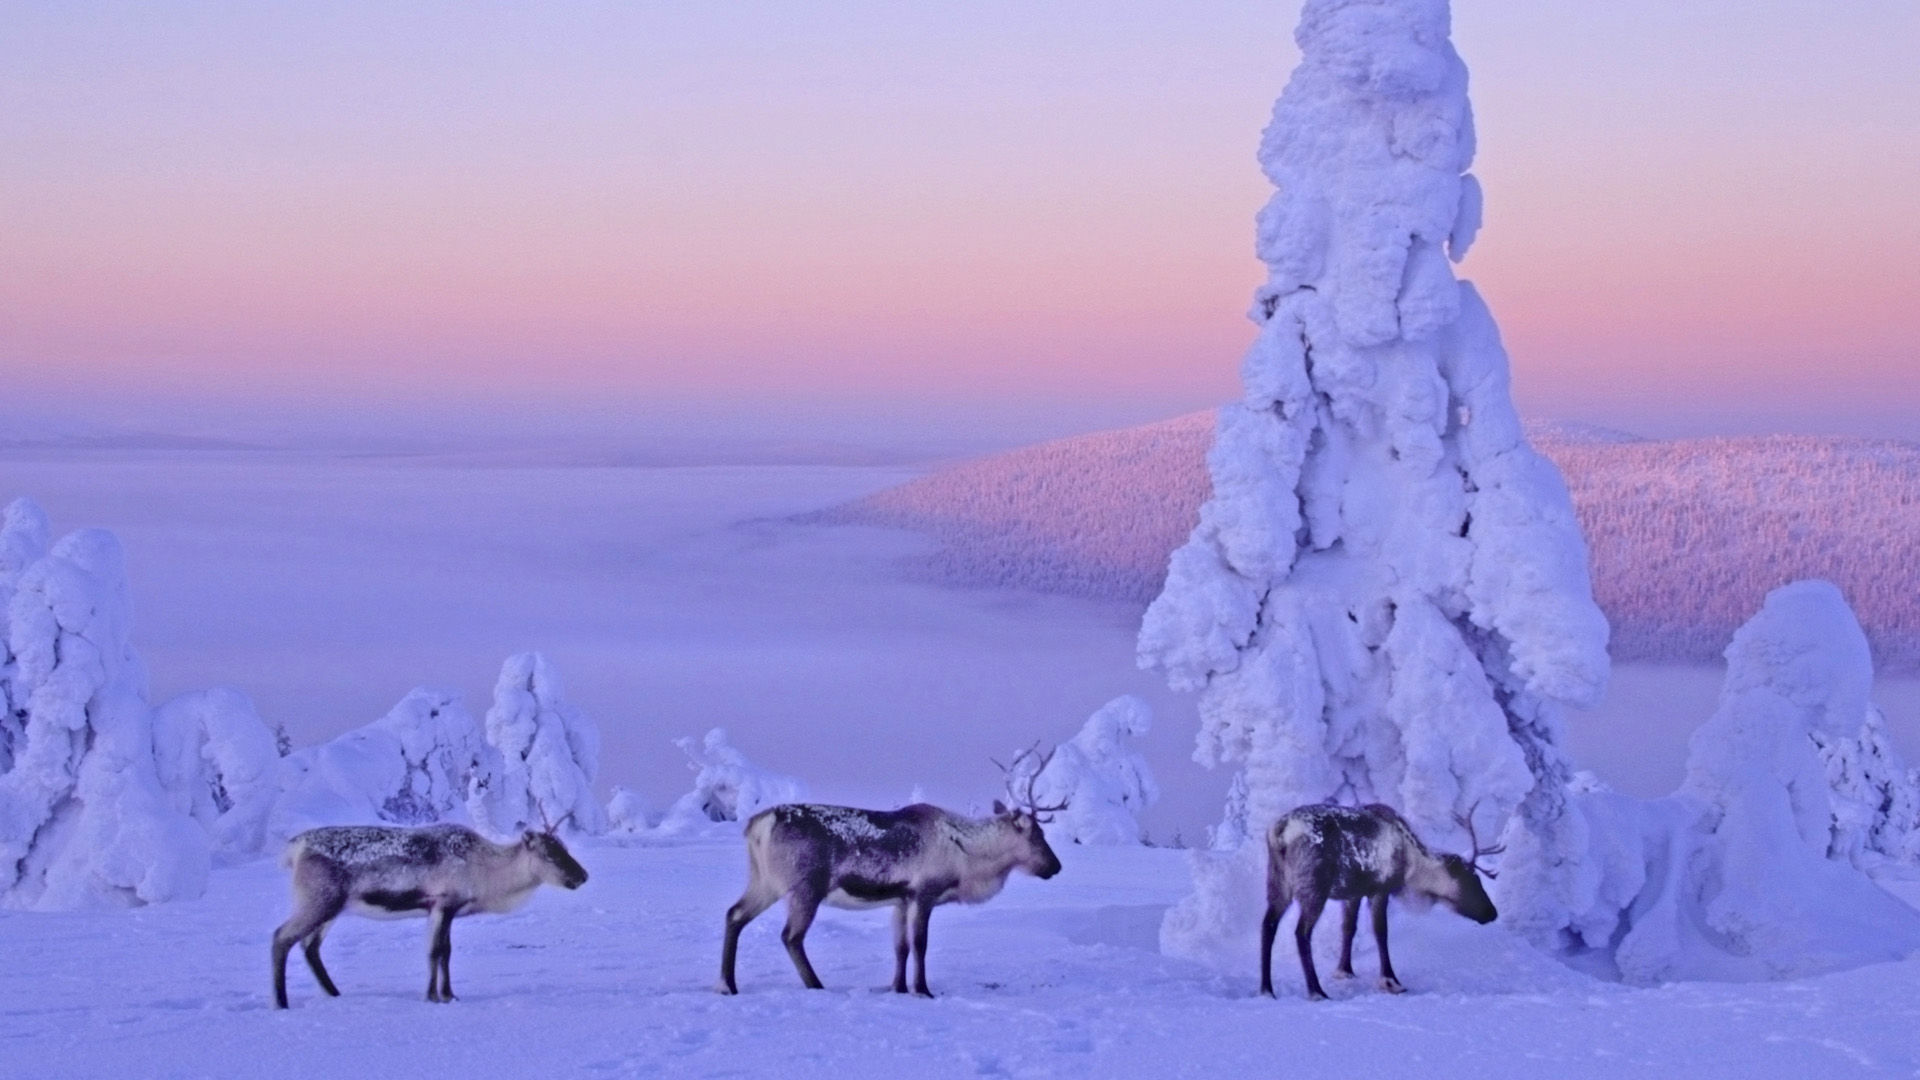 Snow Backgrounds tumblr wallpaper Snow Backgrounds tumblr hd 1920x1080